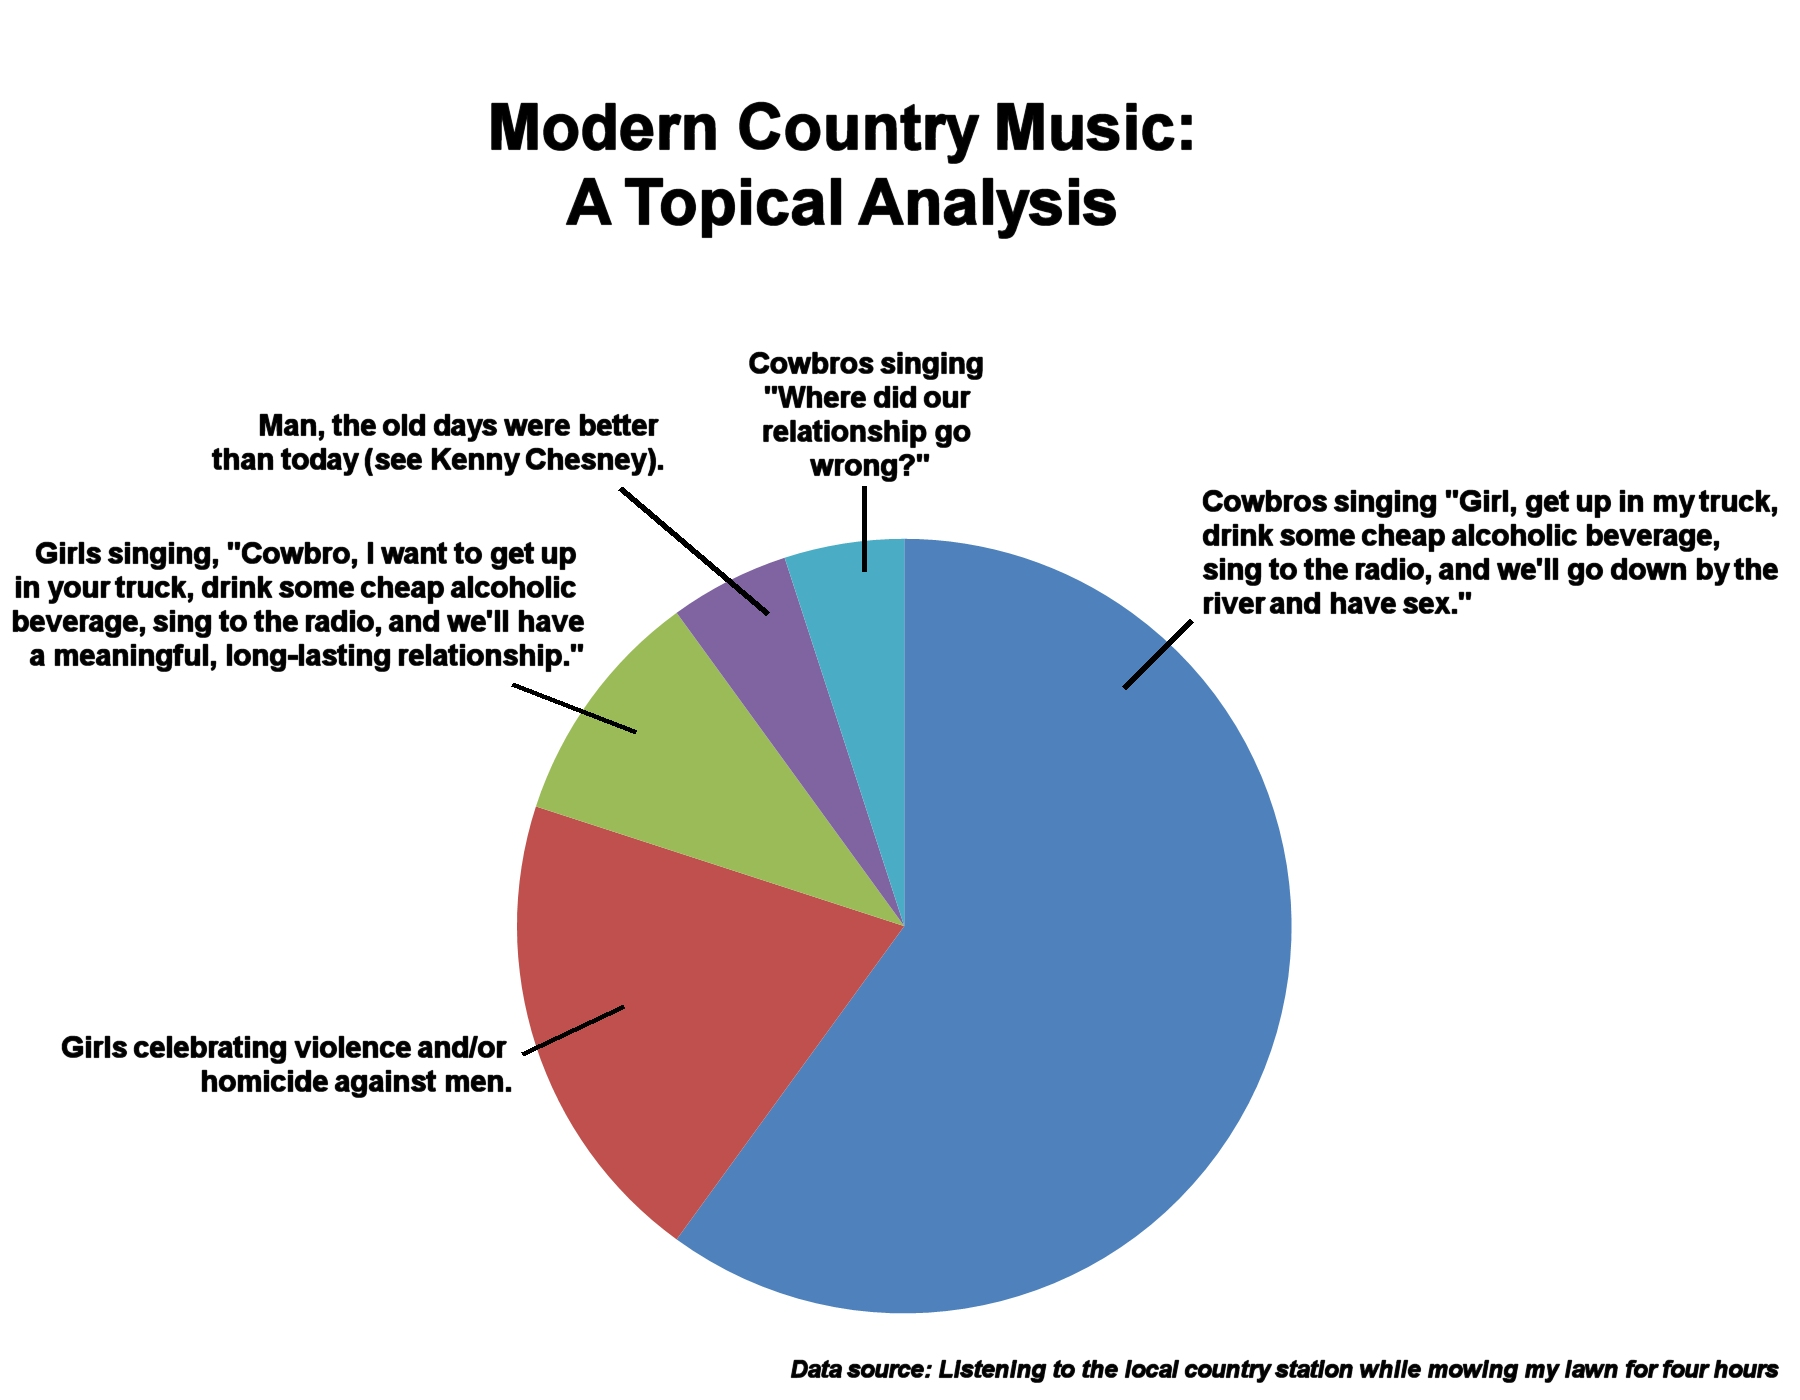 An analysis of the topic of the modern music